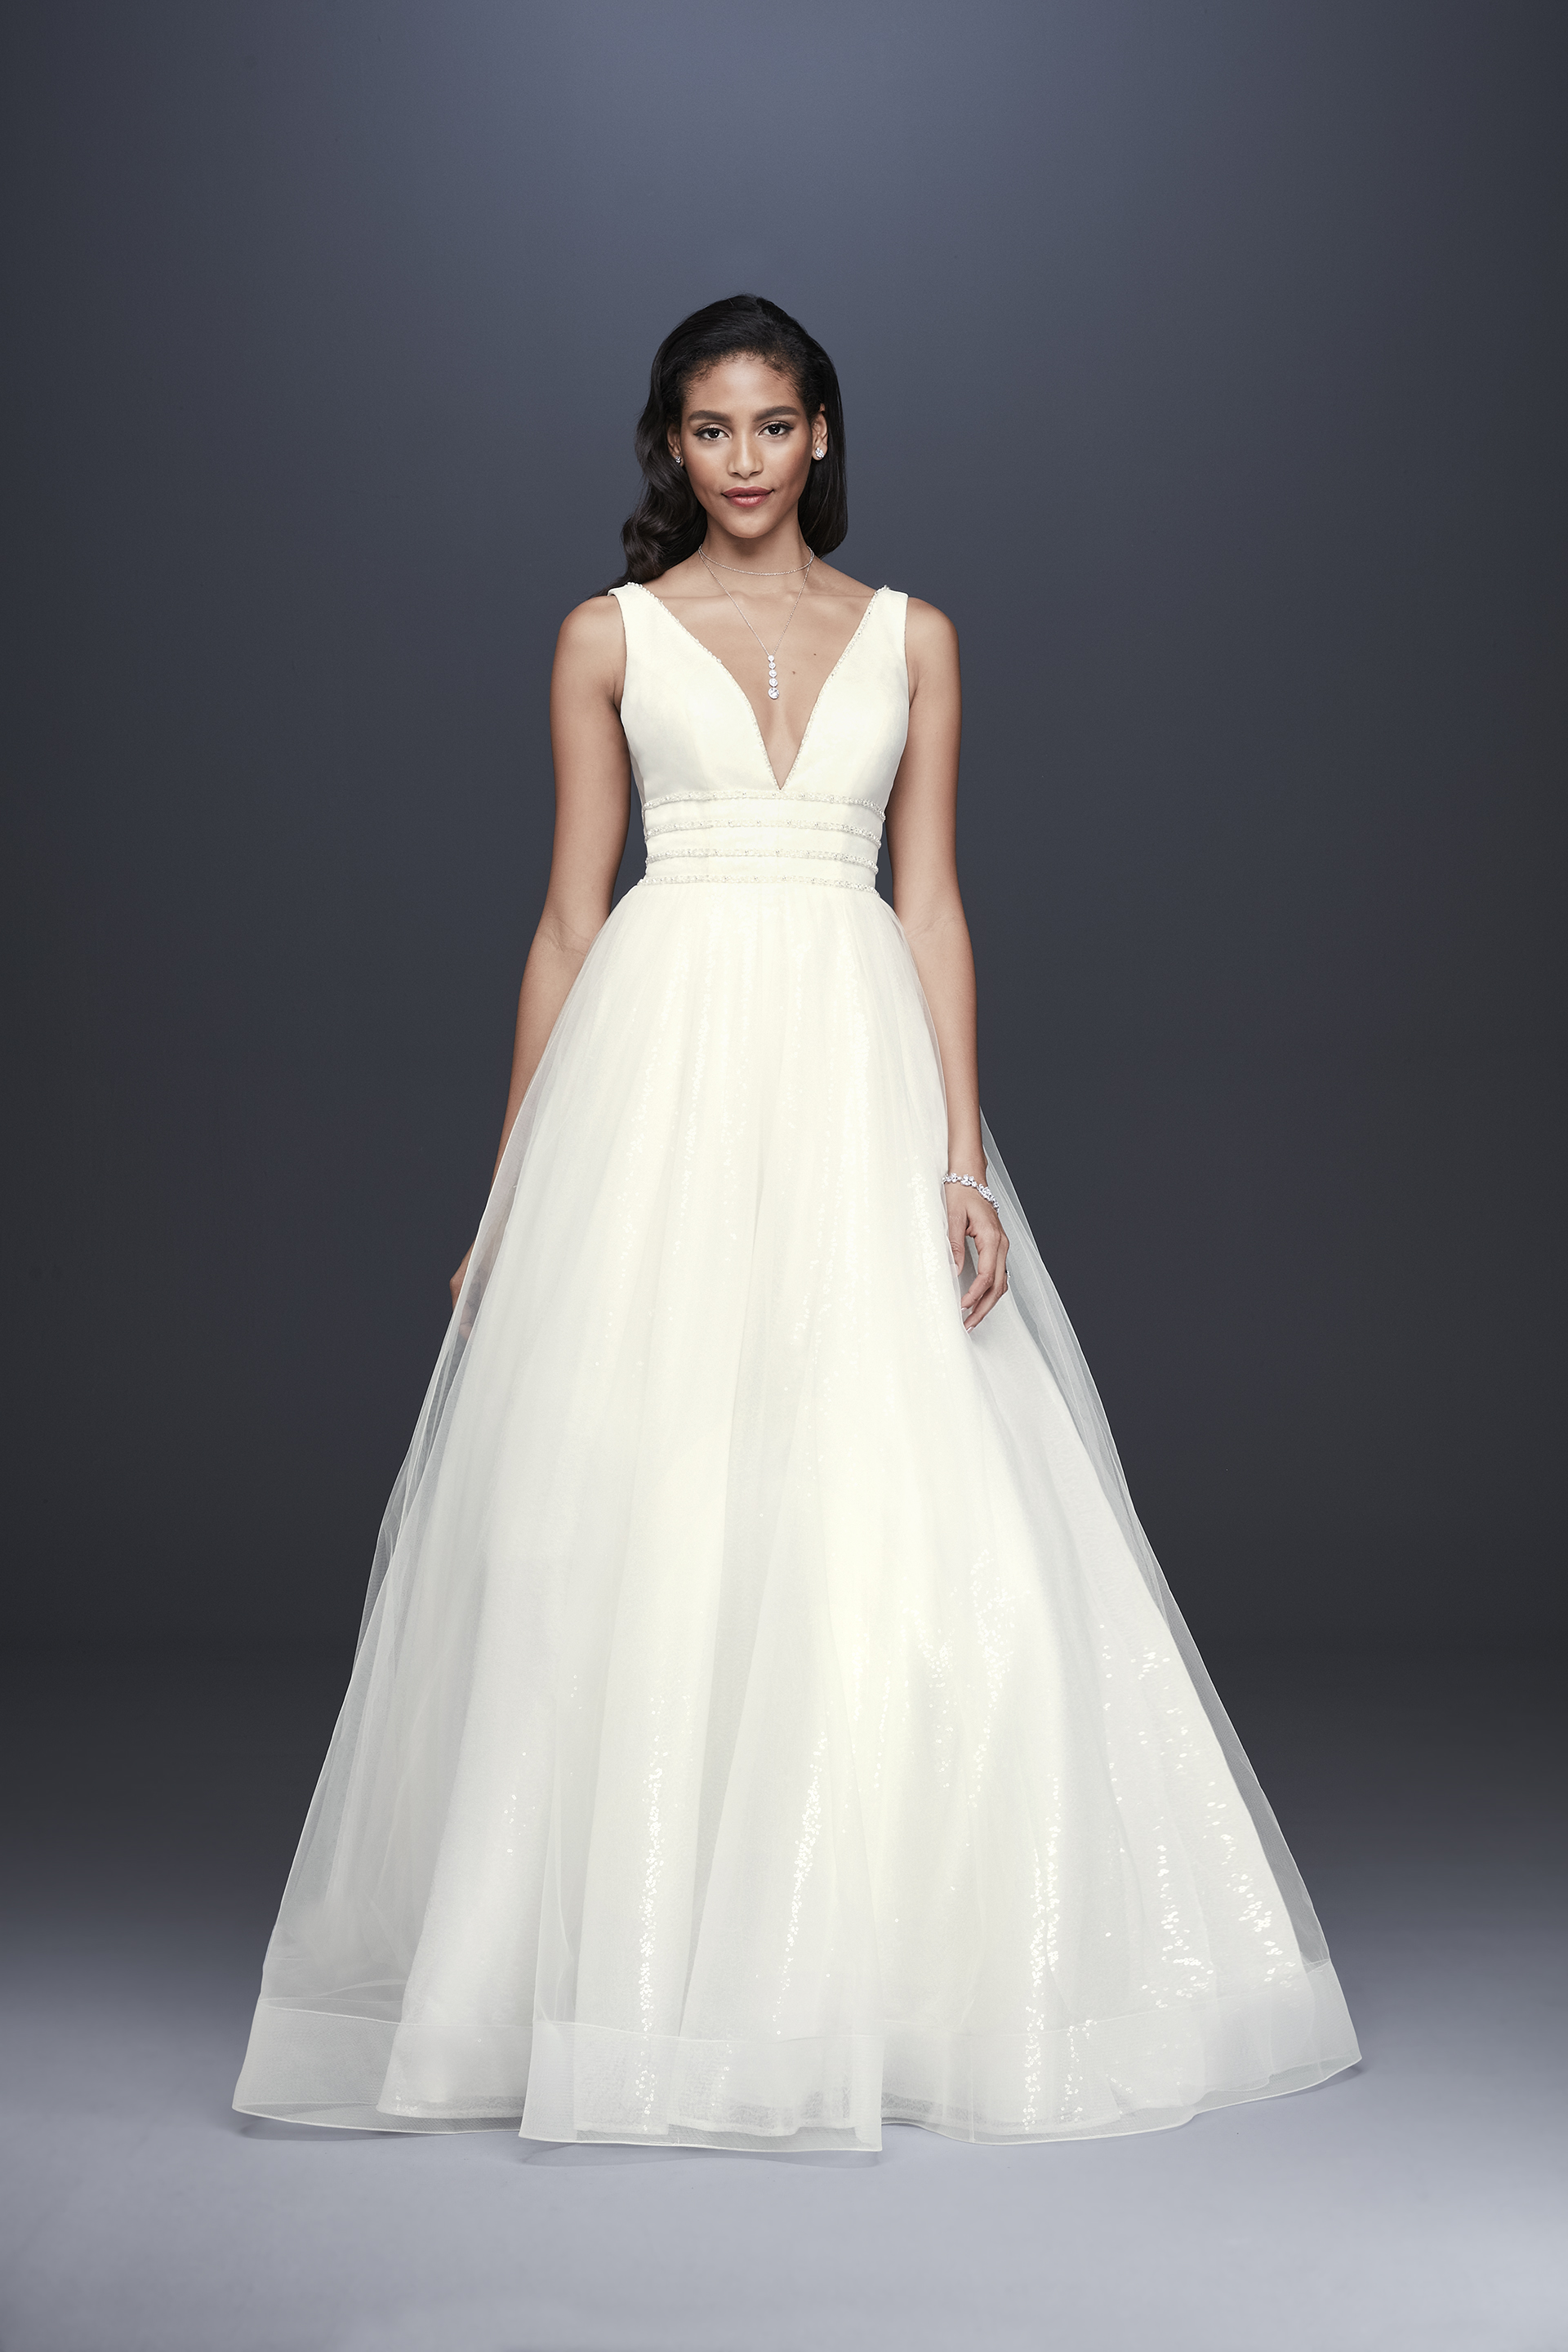 davids bridal galina signature fall 2019 ball gown plunging v neck sleeveless beaded belt sheer overlay